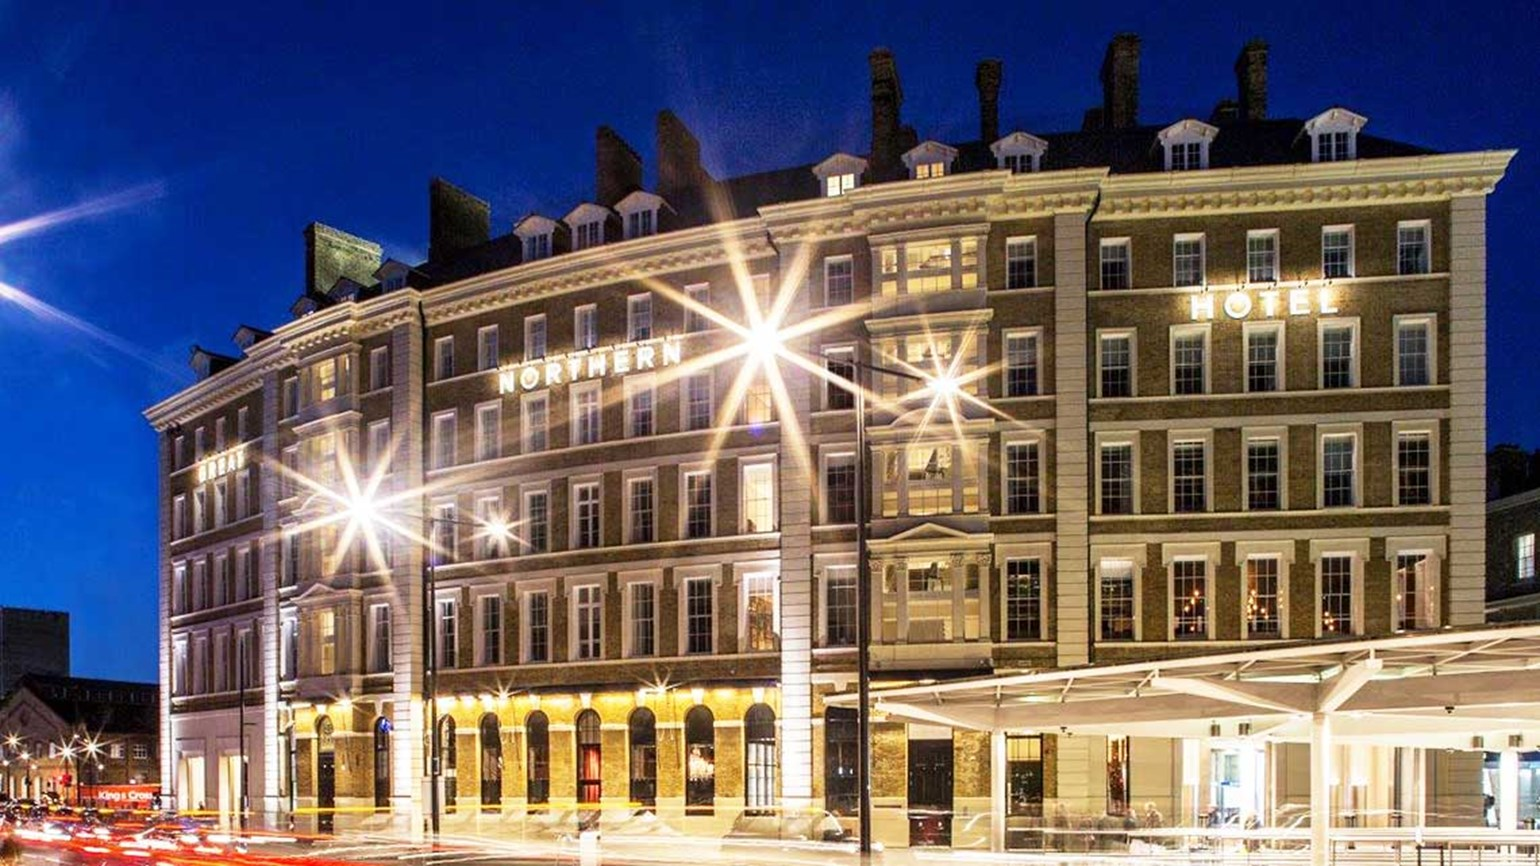 London hotel joins Starwood's Tribute Portfolio